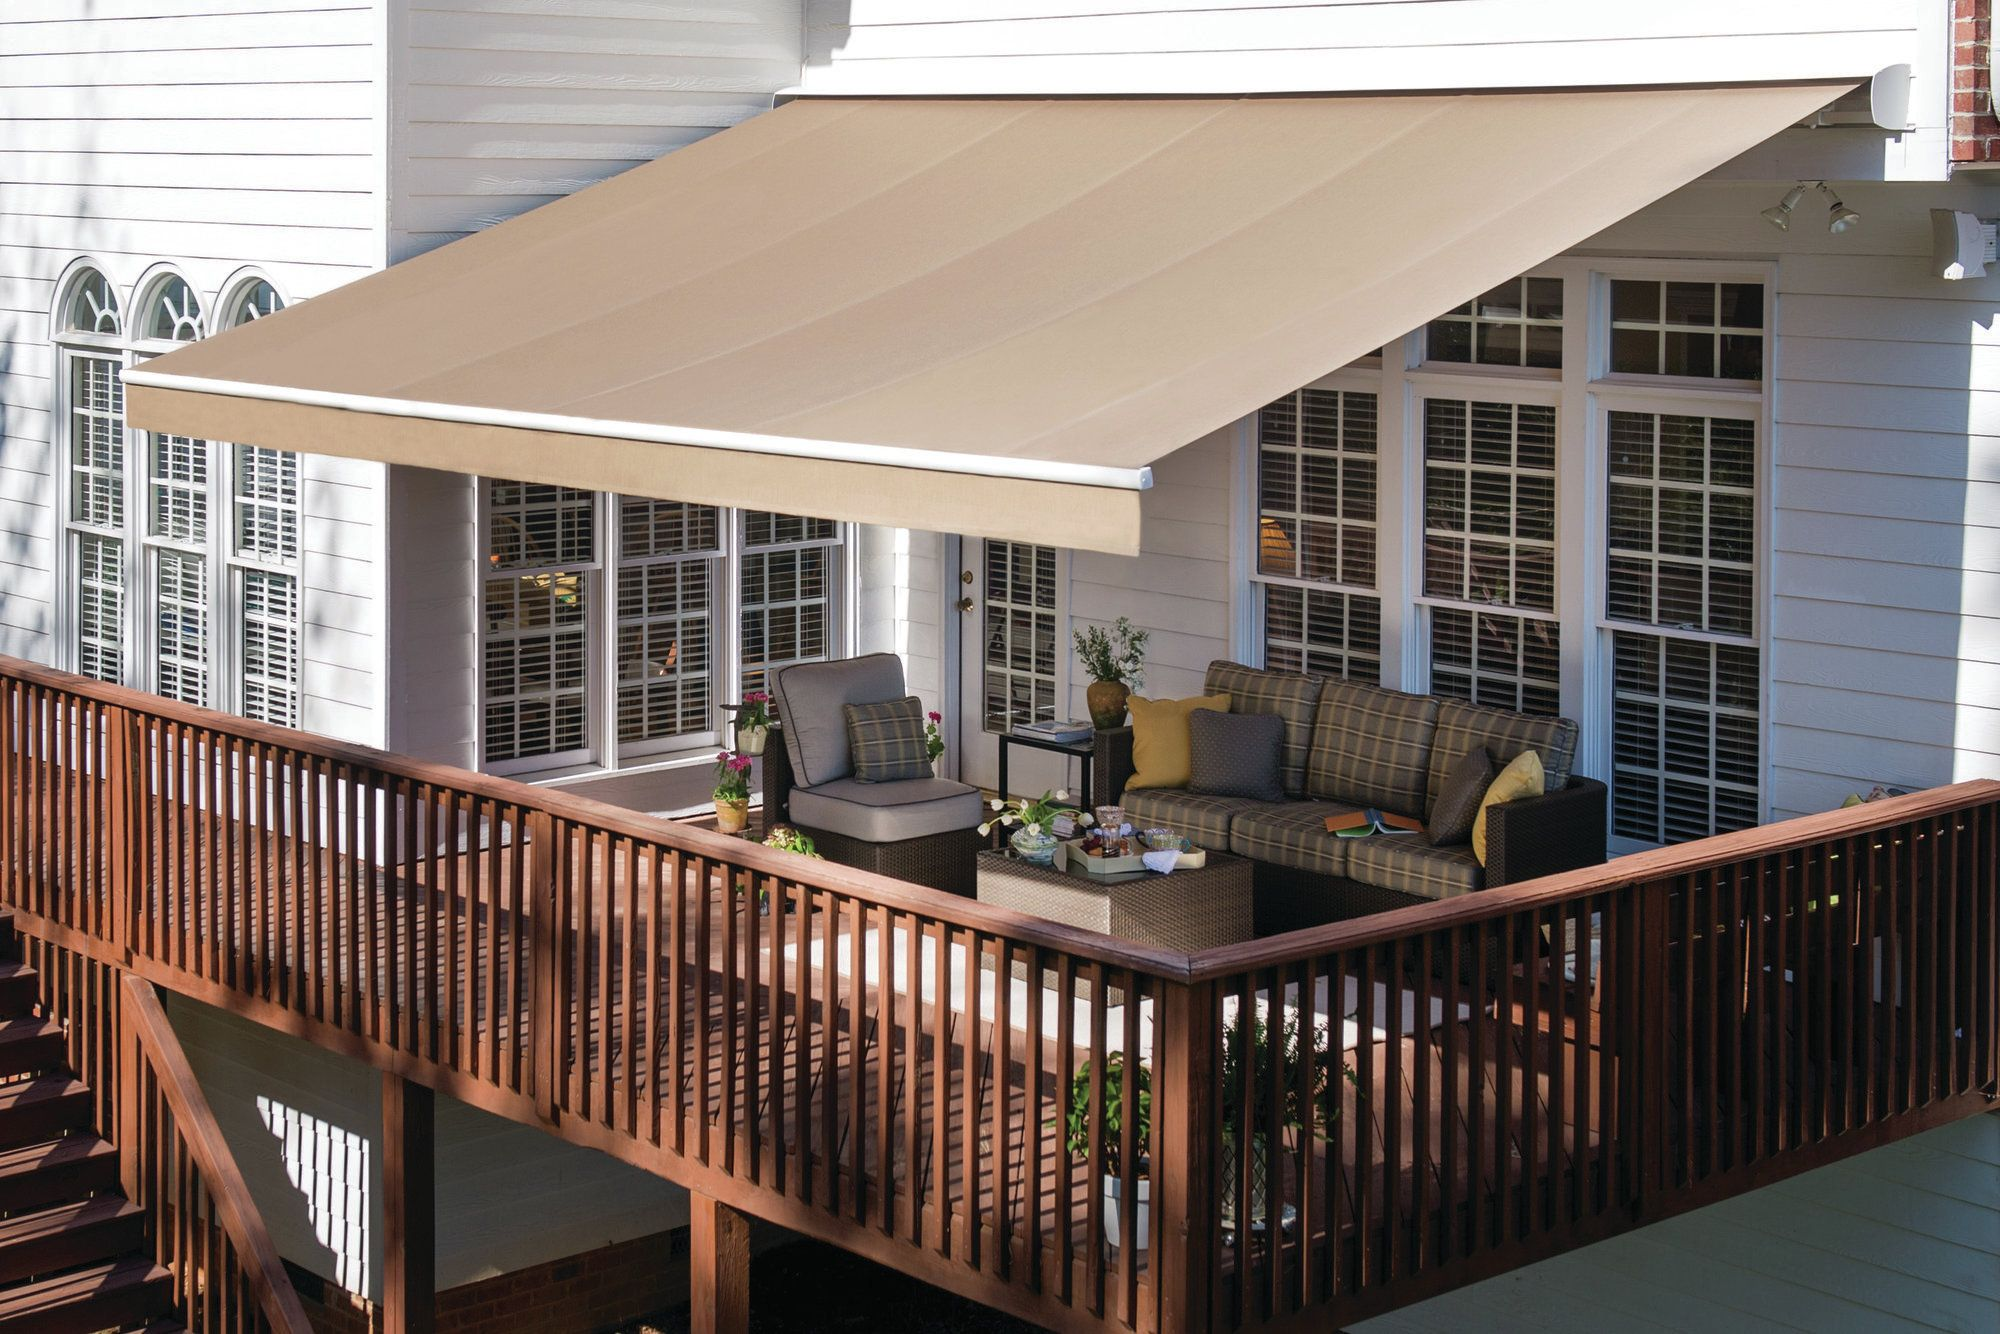 Retractable Awnings Retractable Awning Deck Awnings Outdoor